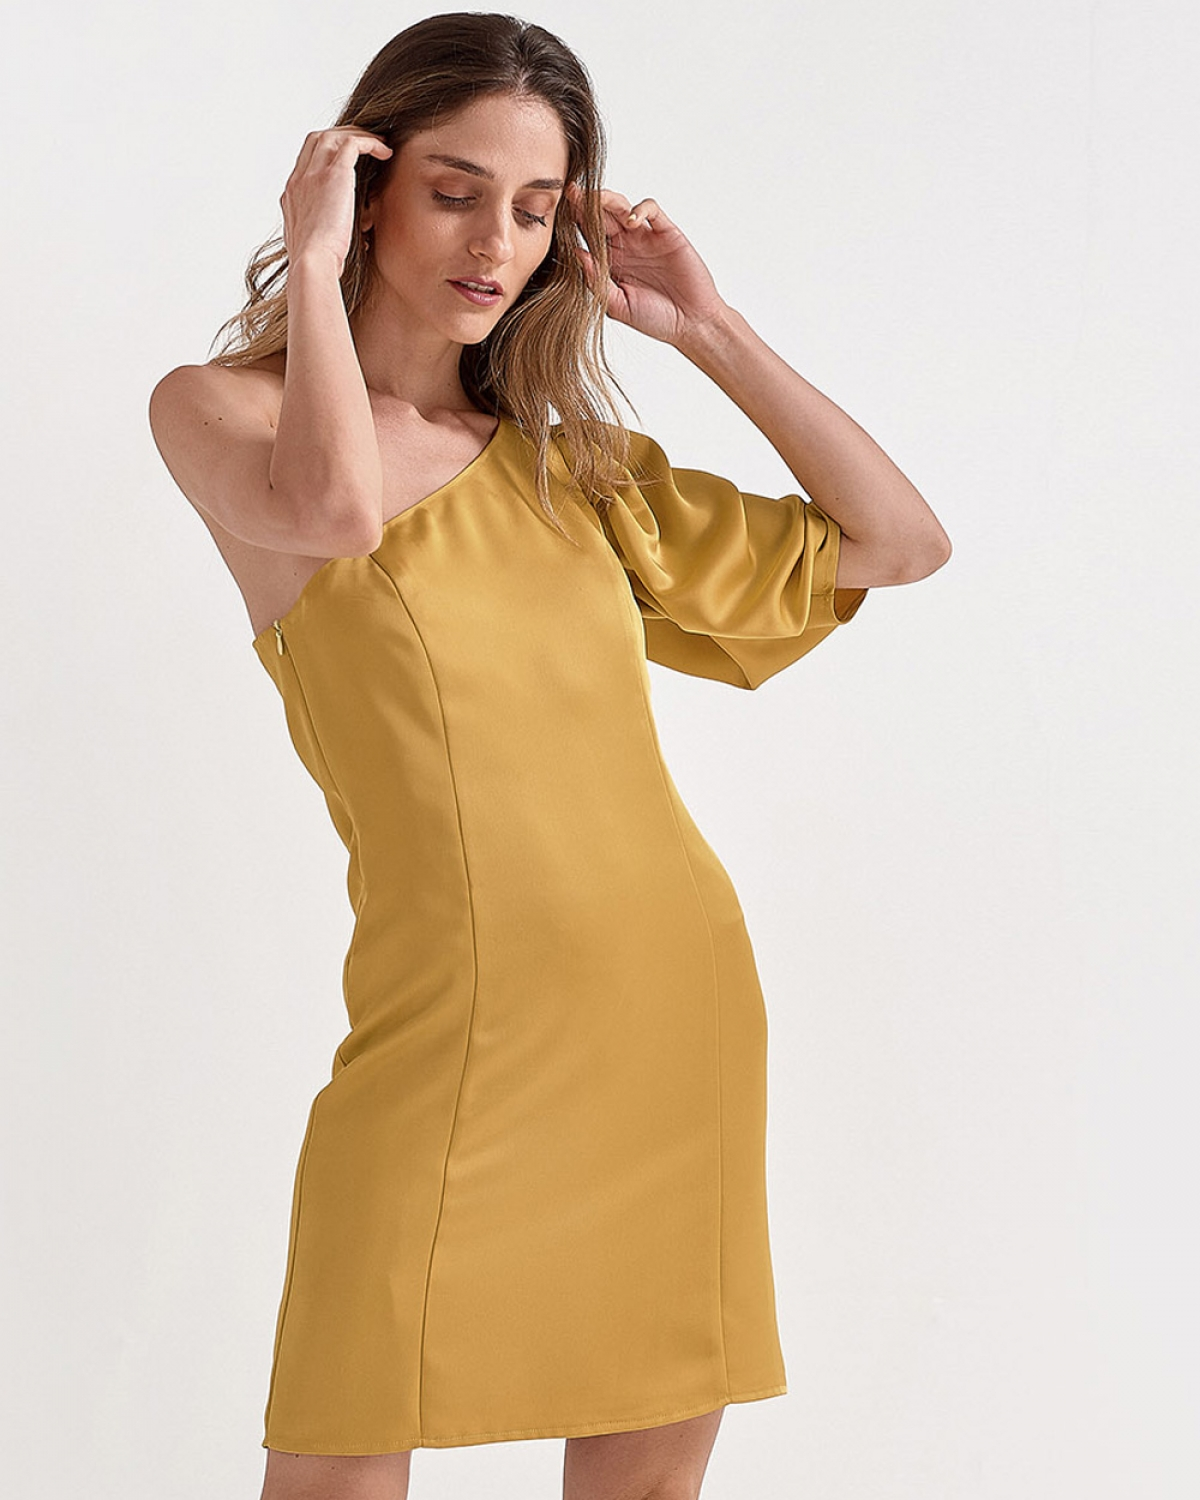 Bella Yellow Dress